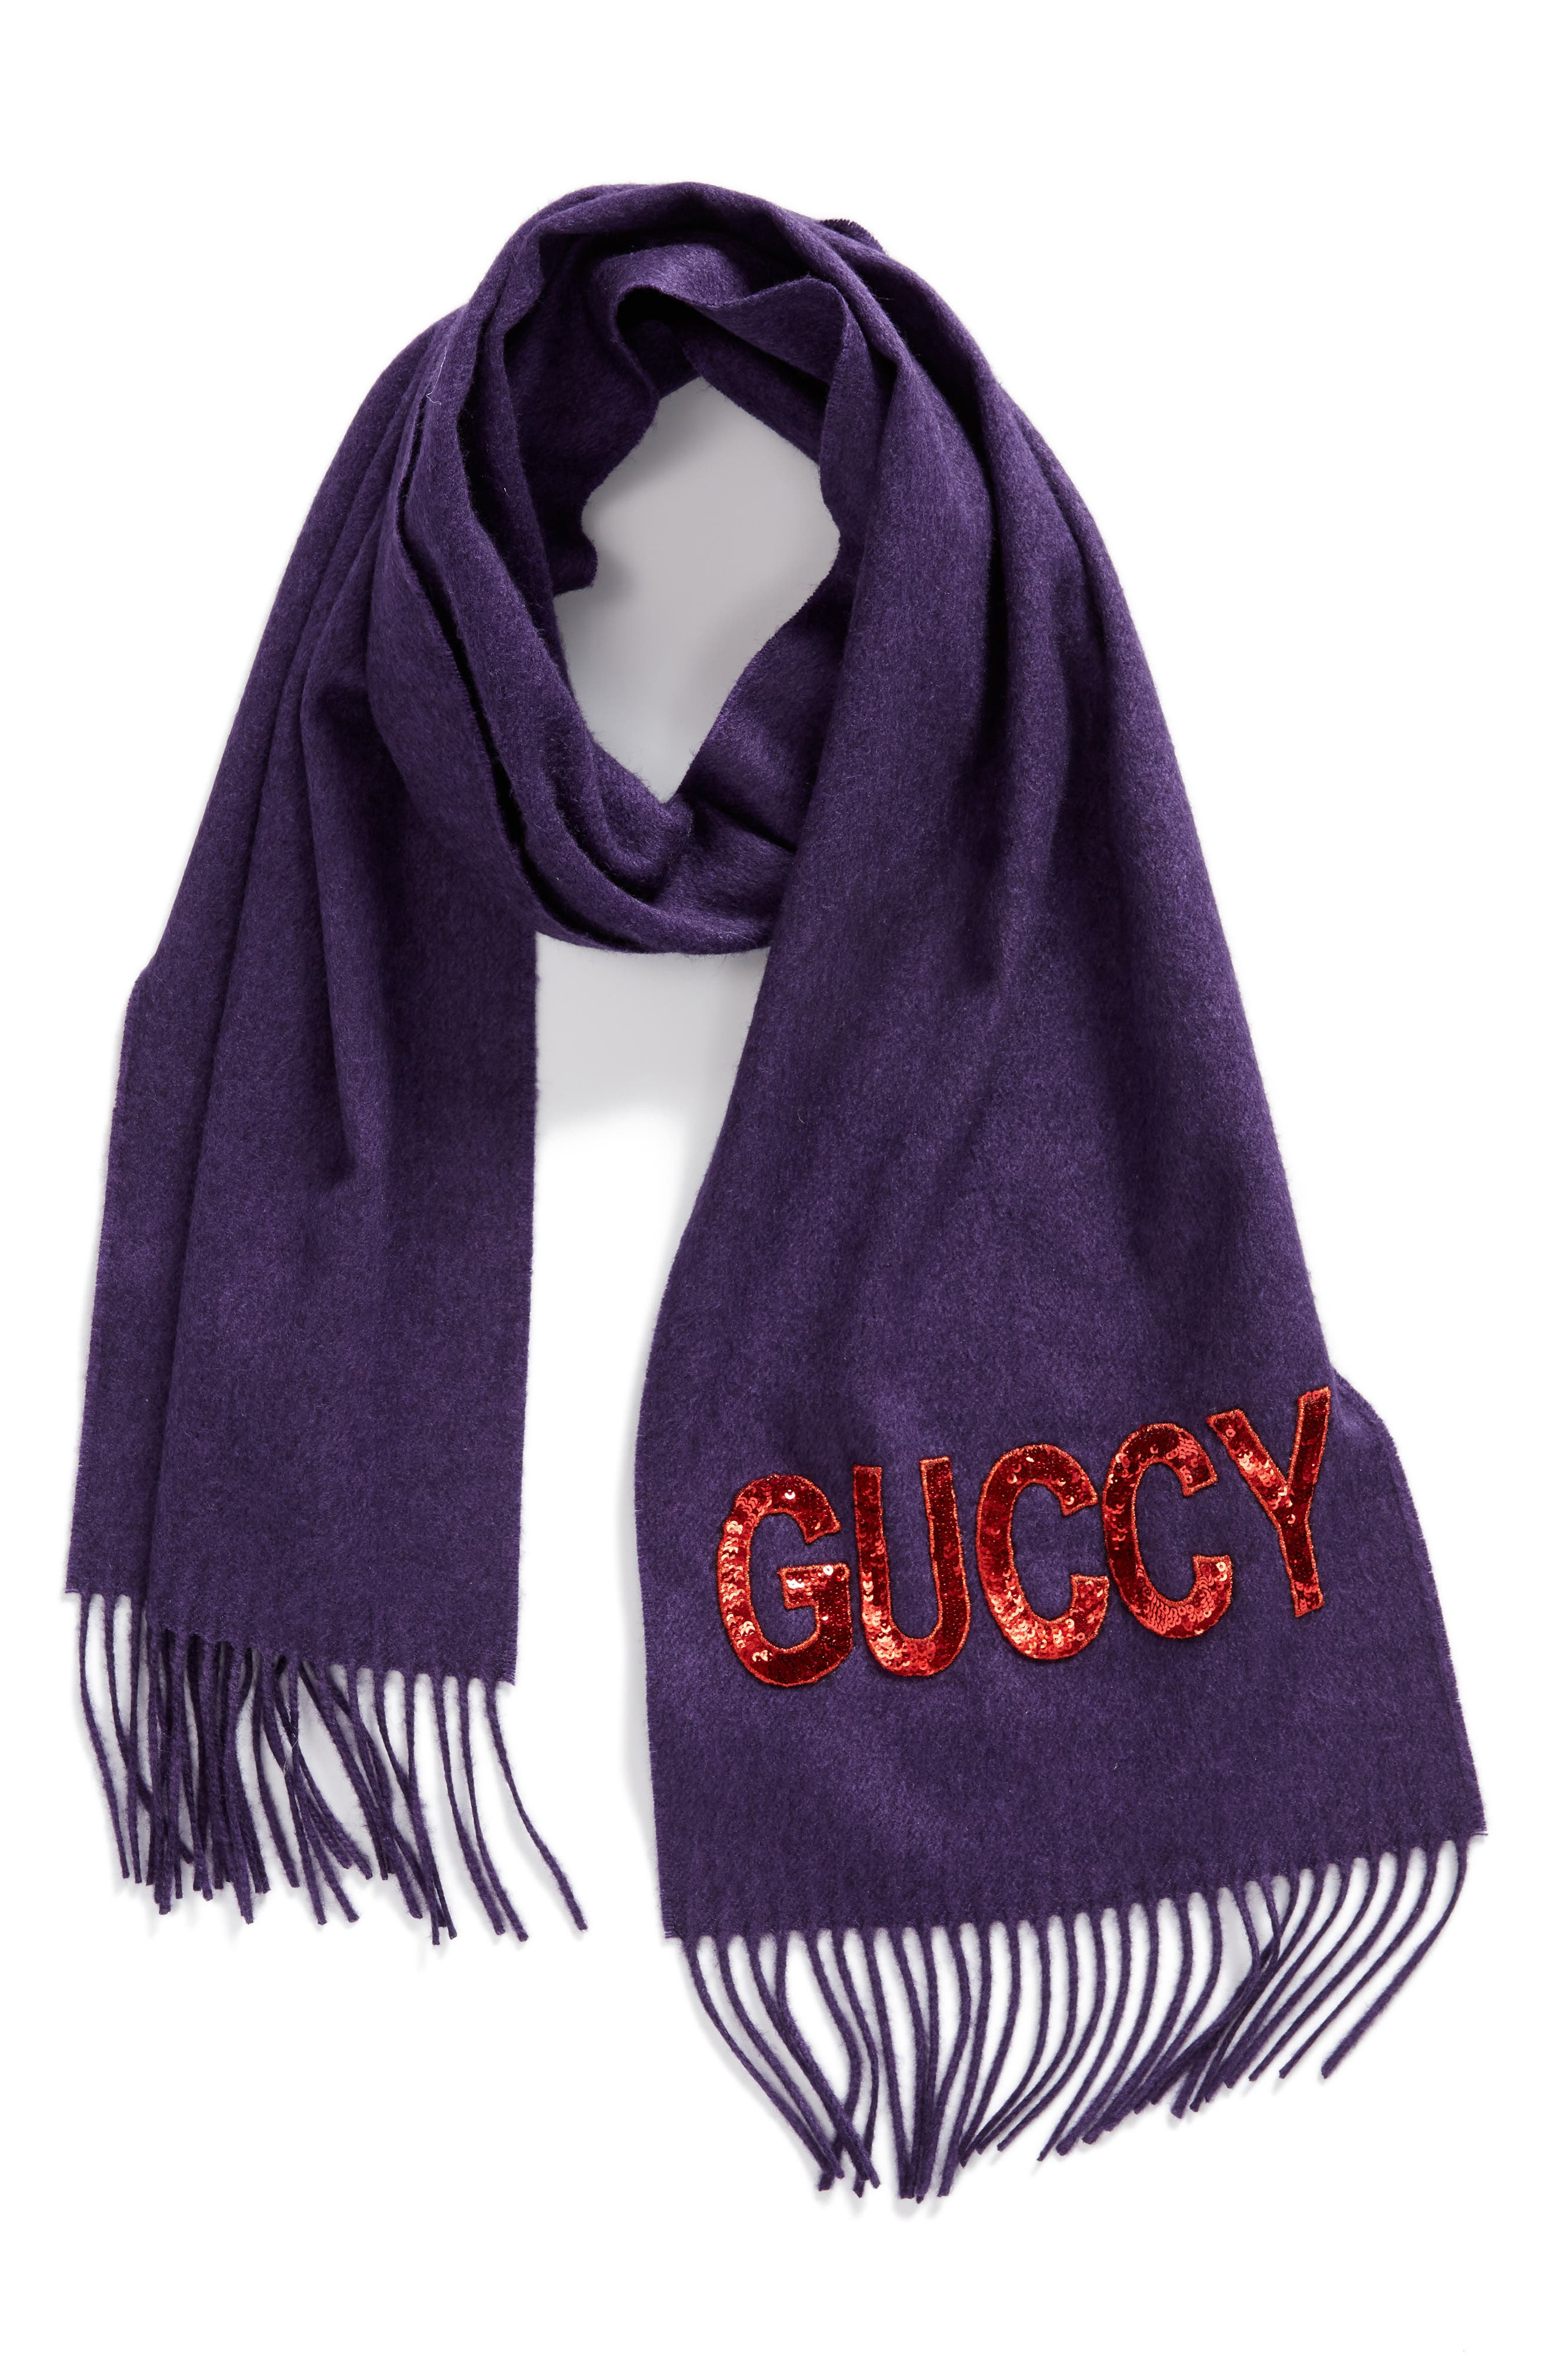 Main Image - Gucci Guccy Sequin Silk & Cashmere Scarf